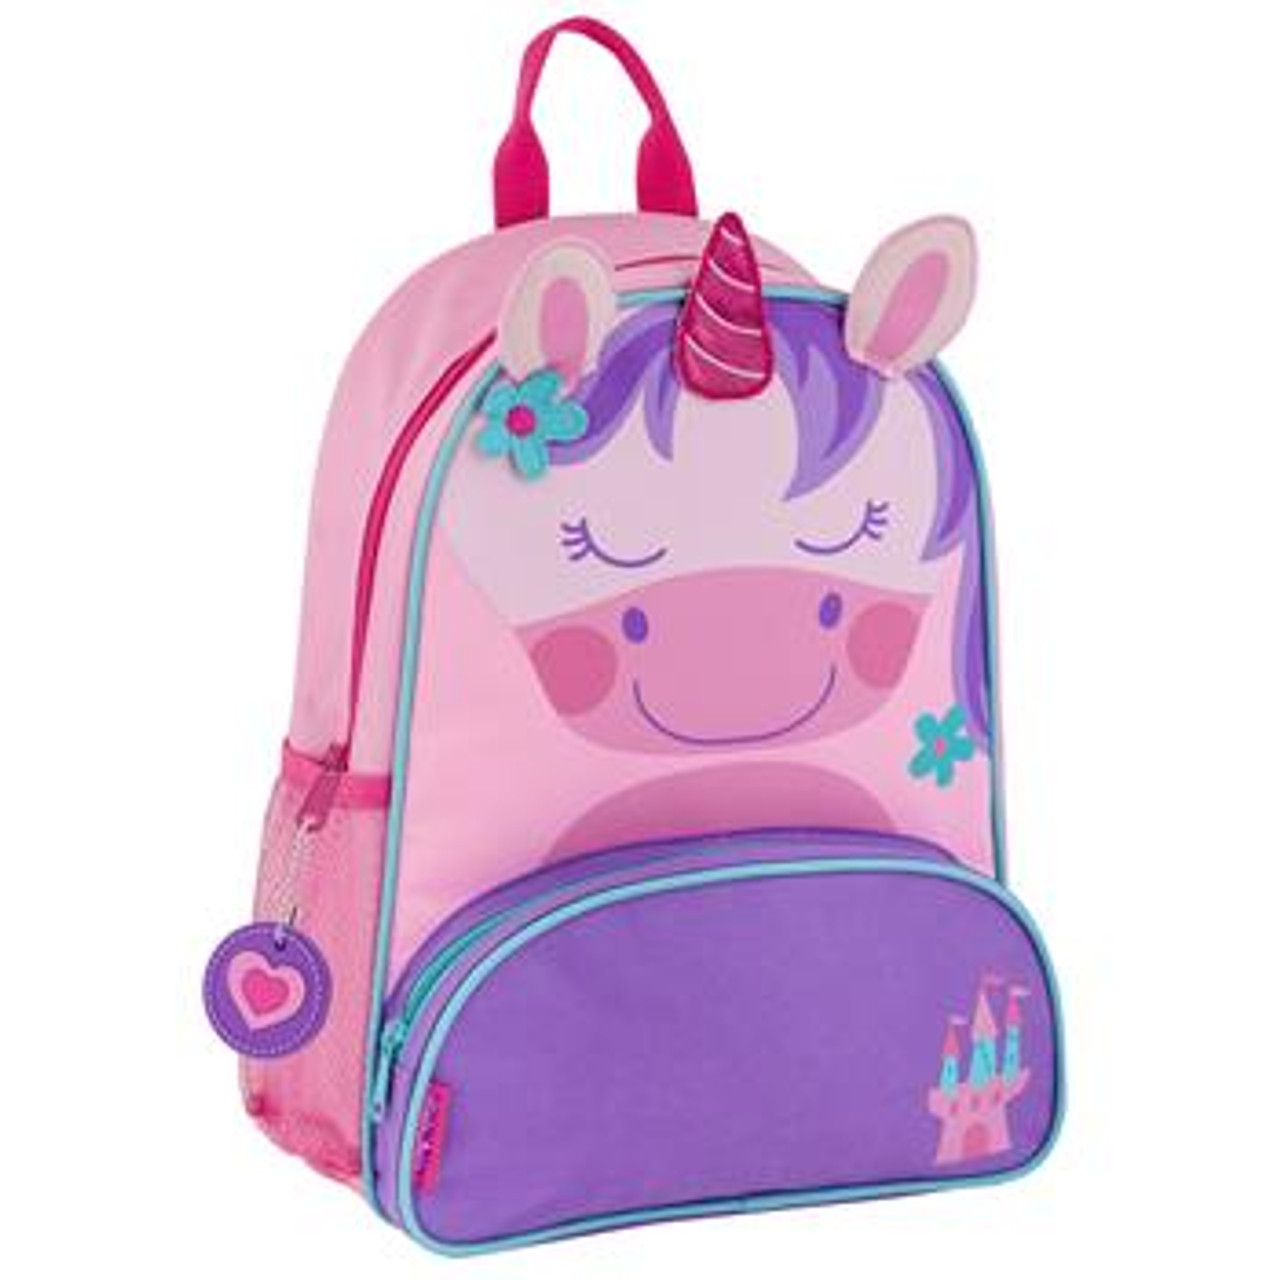 Unicorn Sidekick Backpack - Kids School Bags